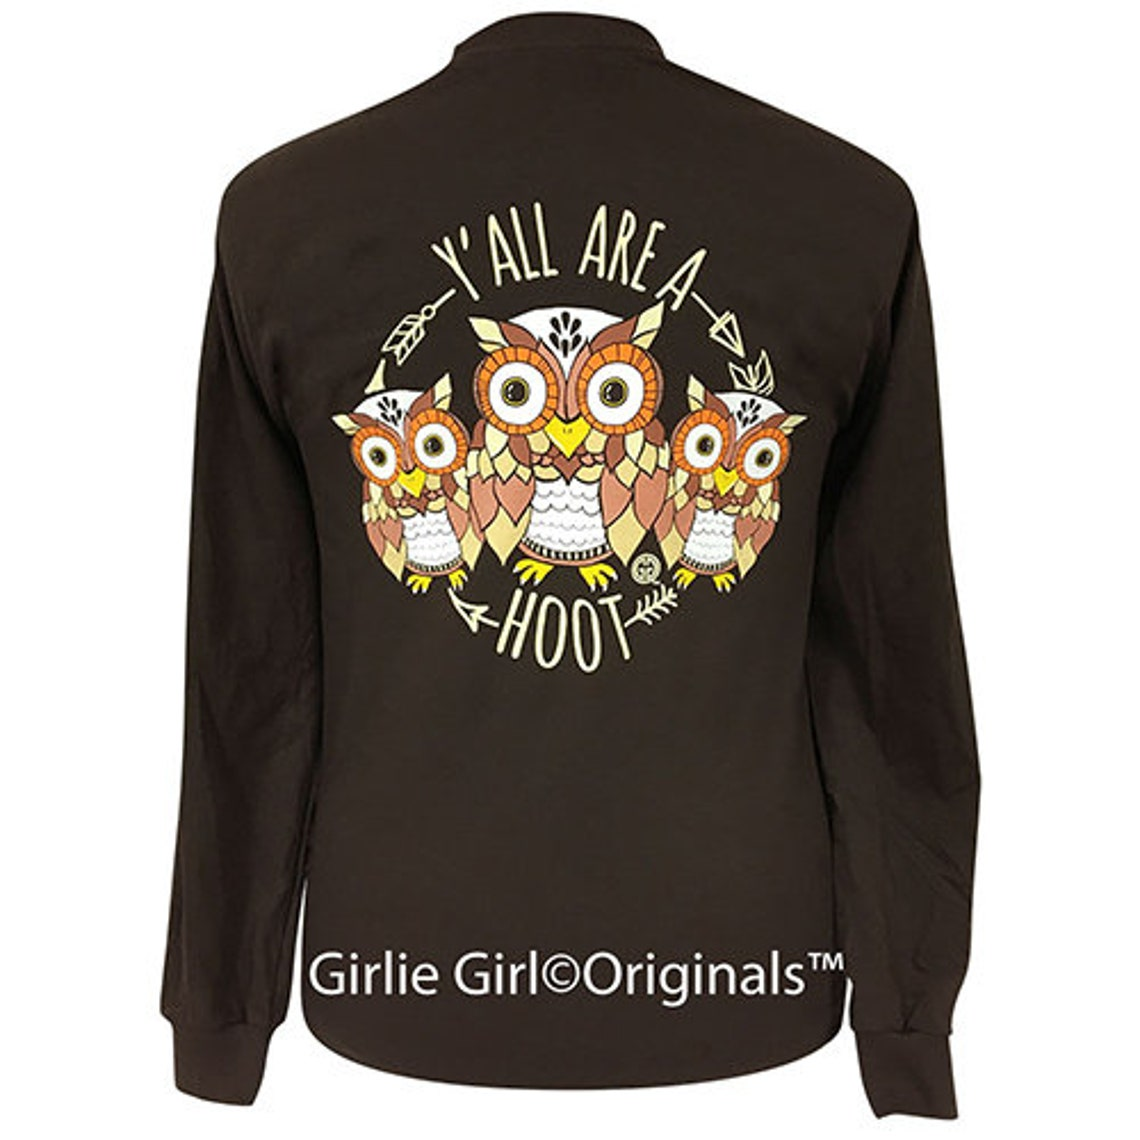 cecfdde19 Long Sleeve Girlie Girl T Shirts – EDGE Engineering and Consulting ...